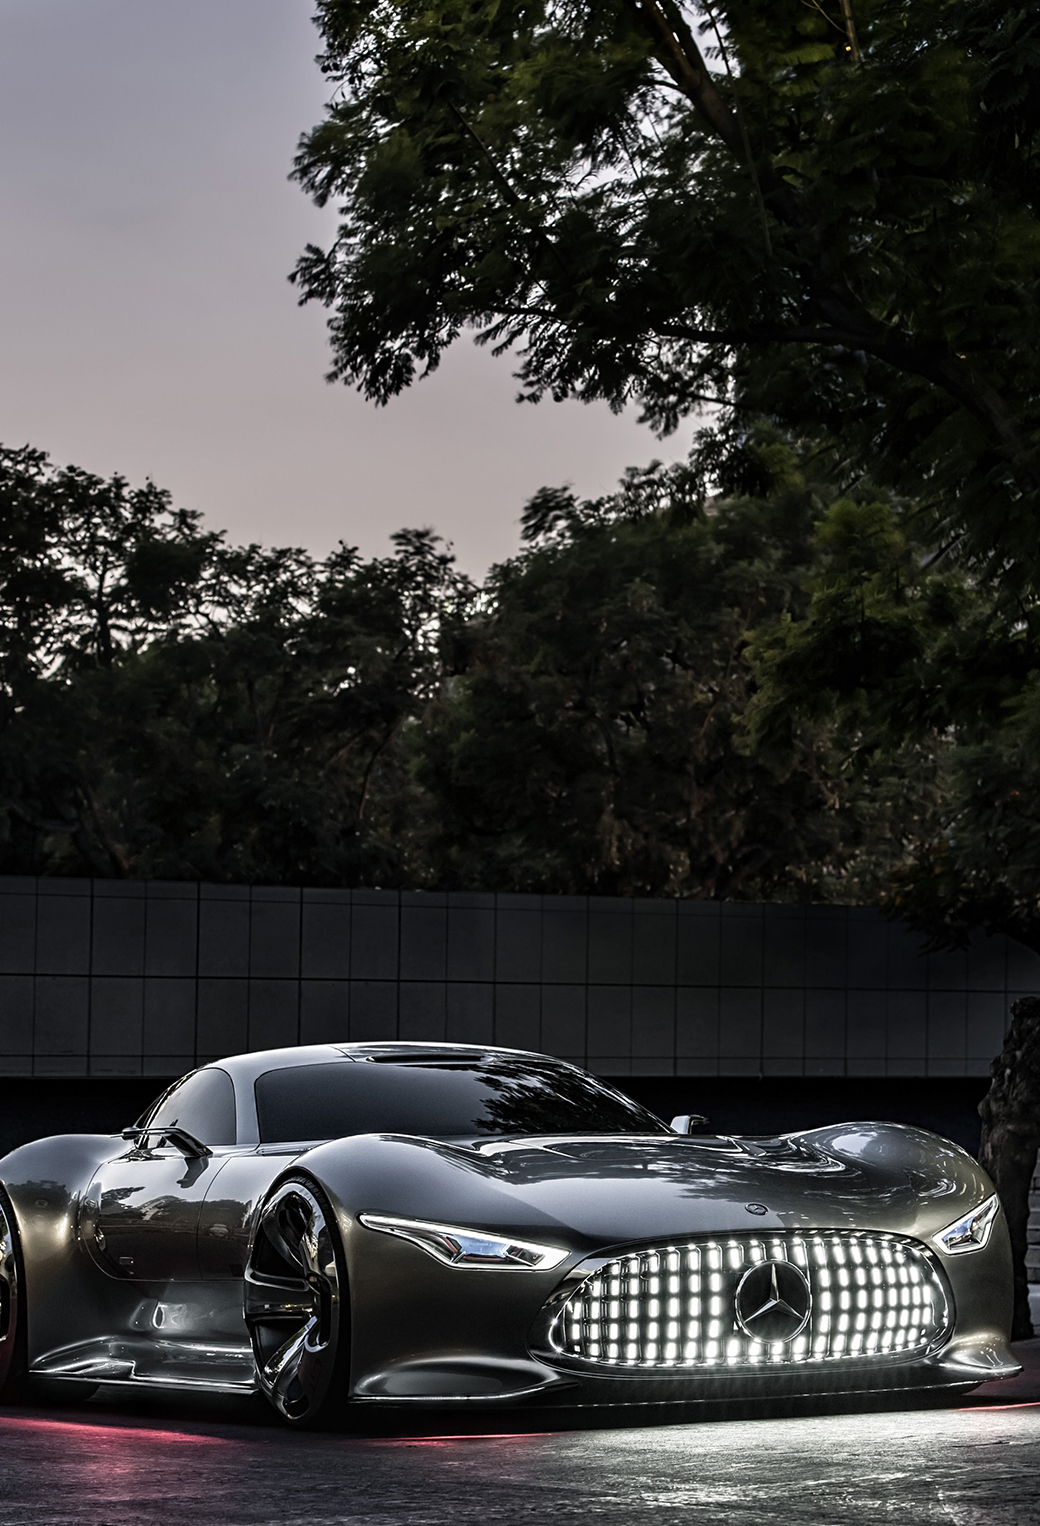 Mercedes benz amg vision wallpaper for iphone x 8 7 6 for Mercedes benz amg vision